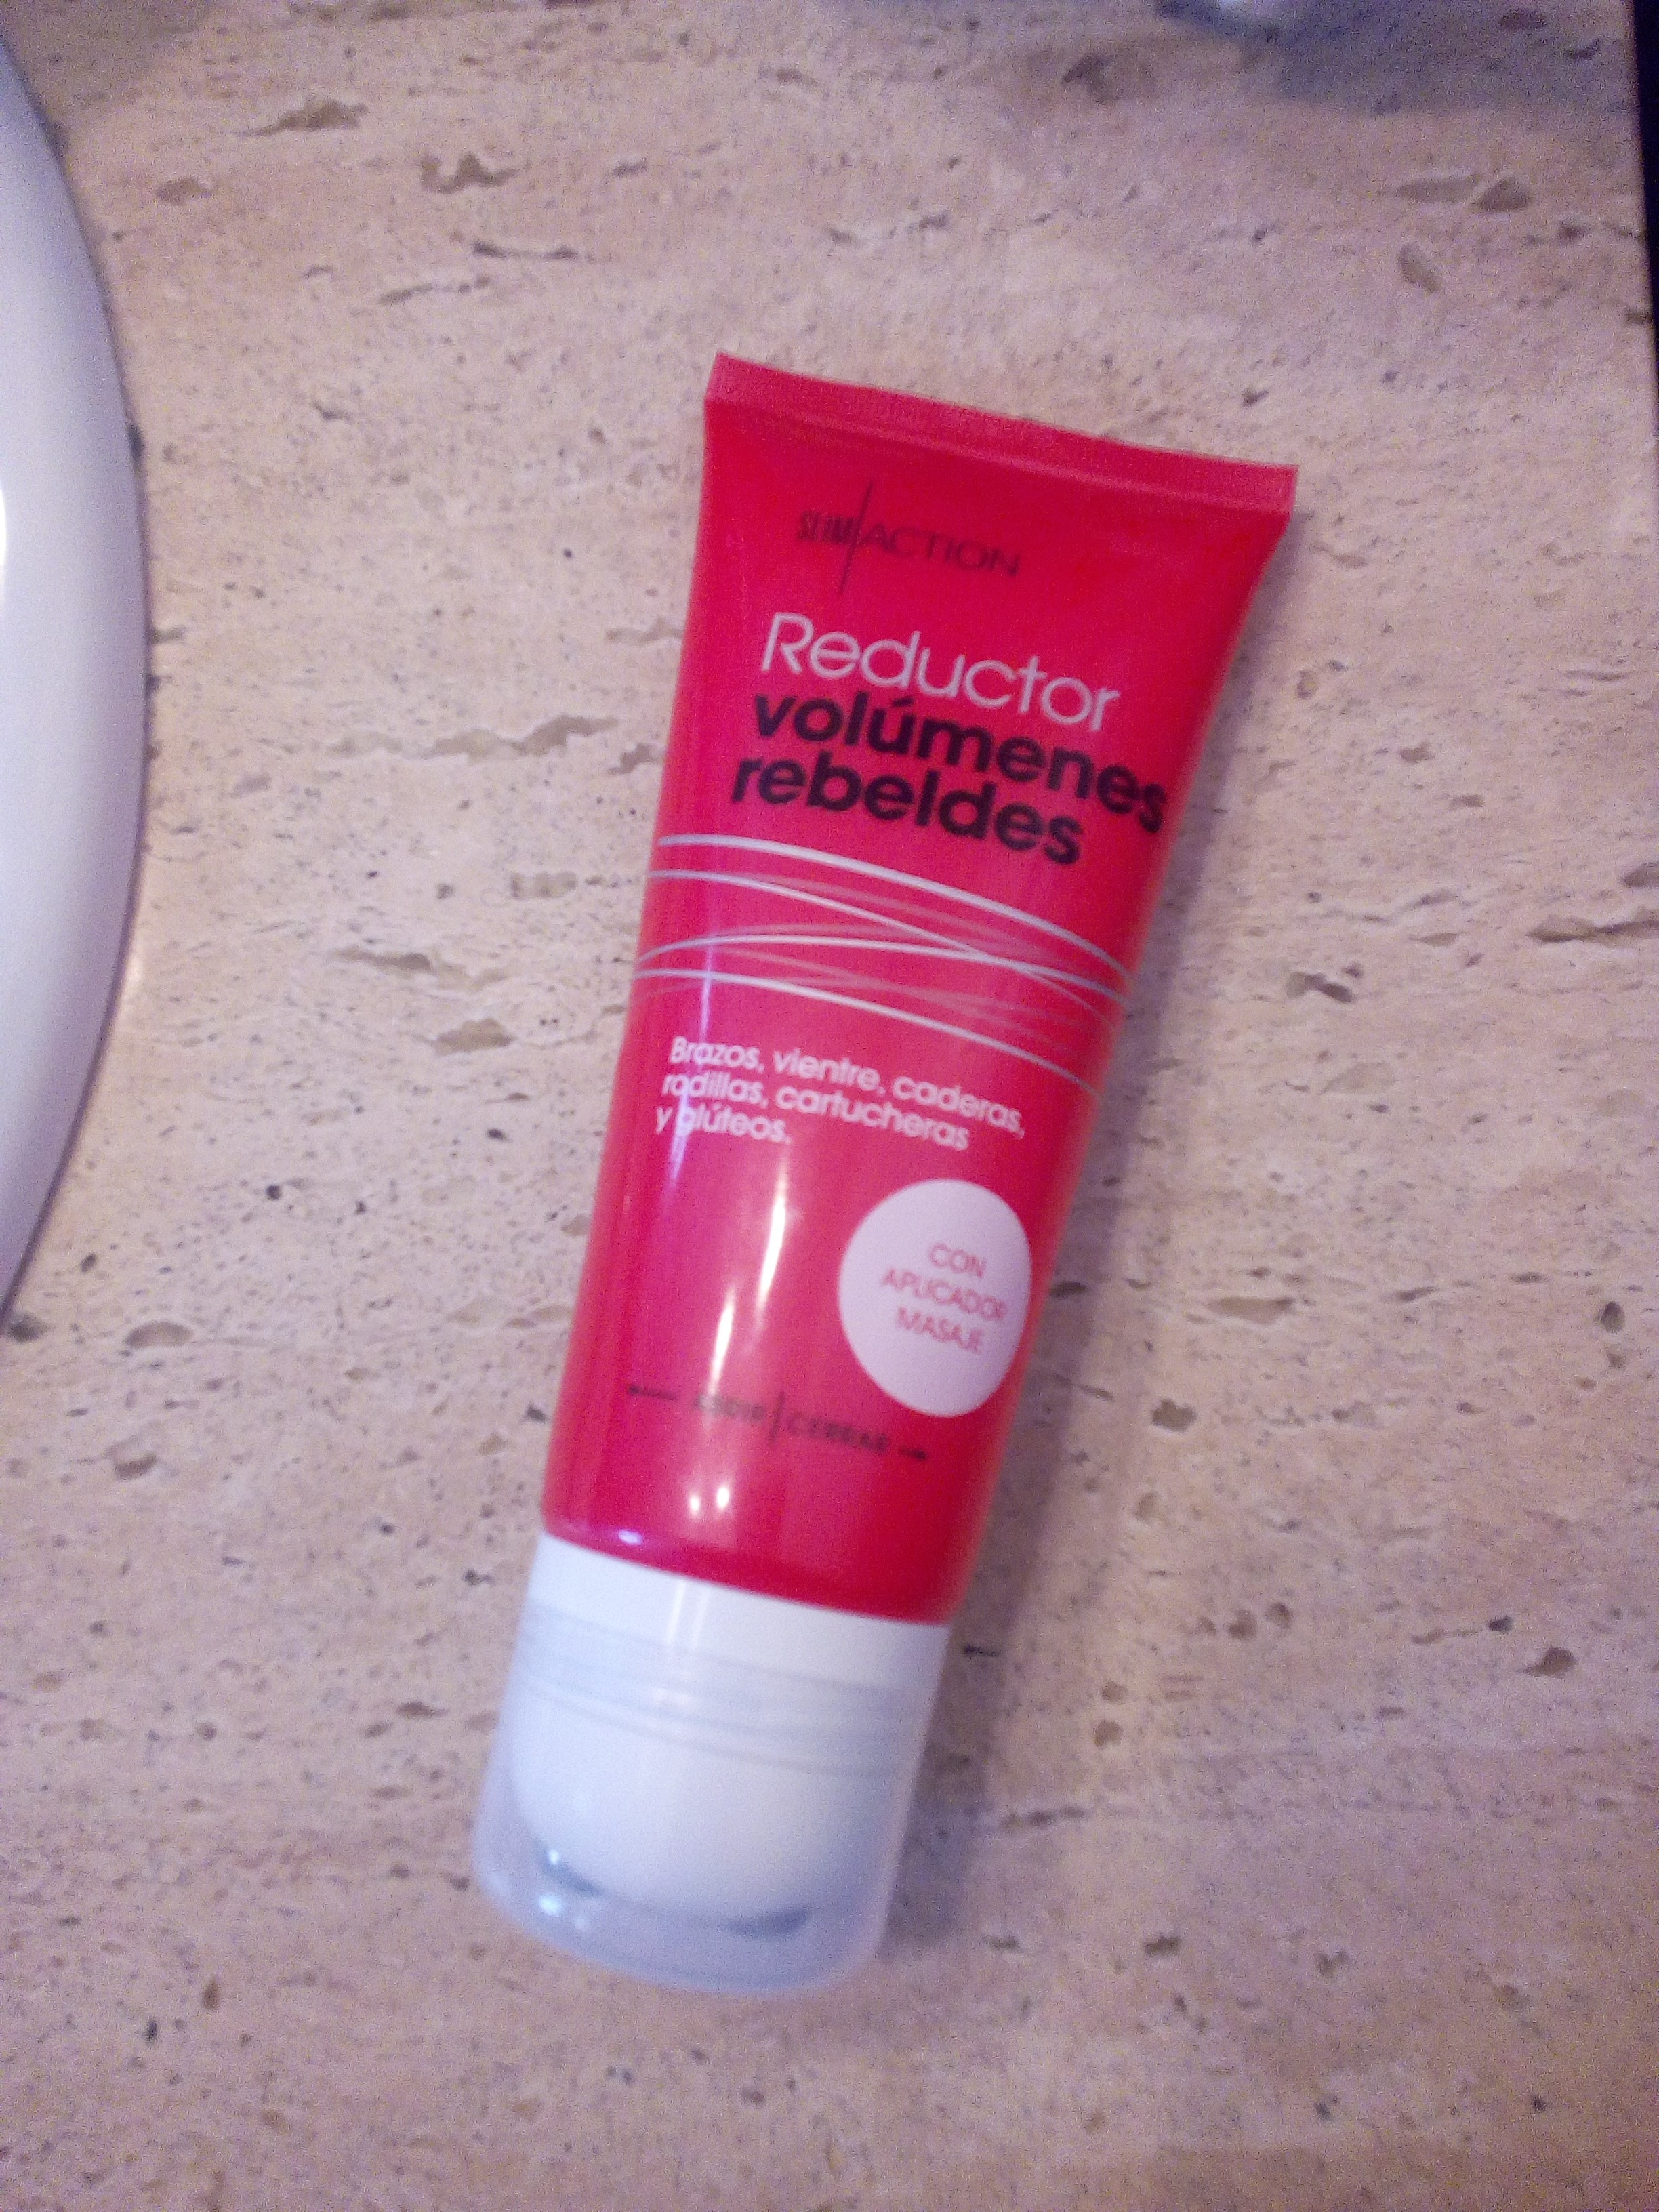 #Review REDUCTOR VOLÚMENES REBELDES SLIM ACTION DELIPLUS